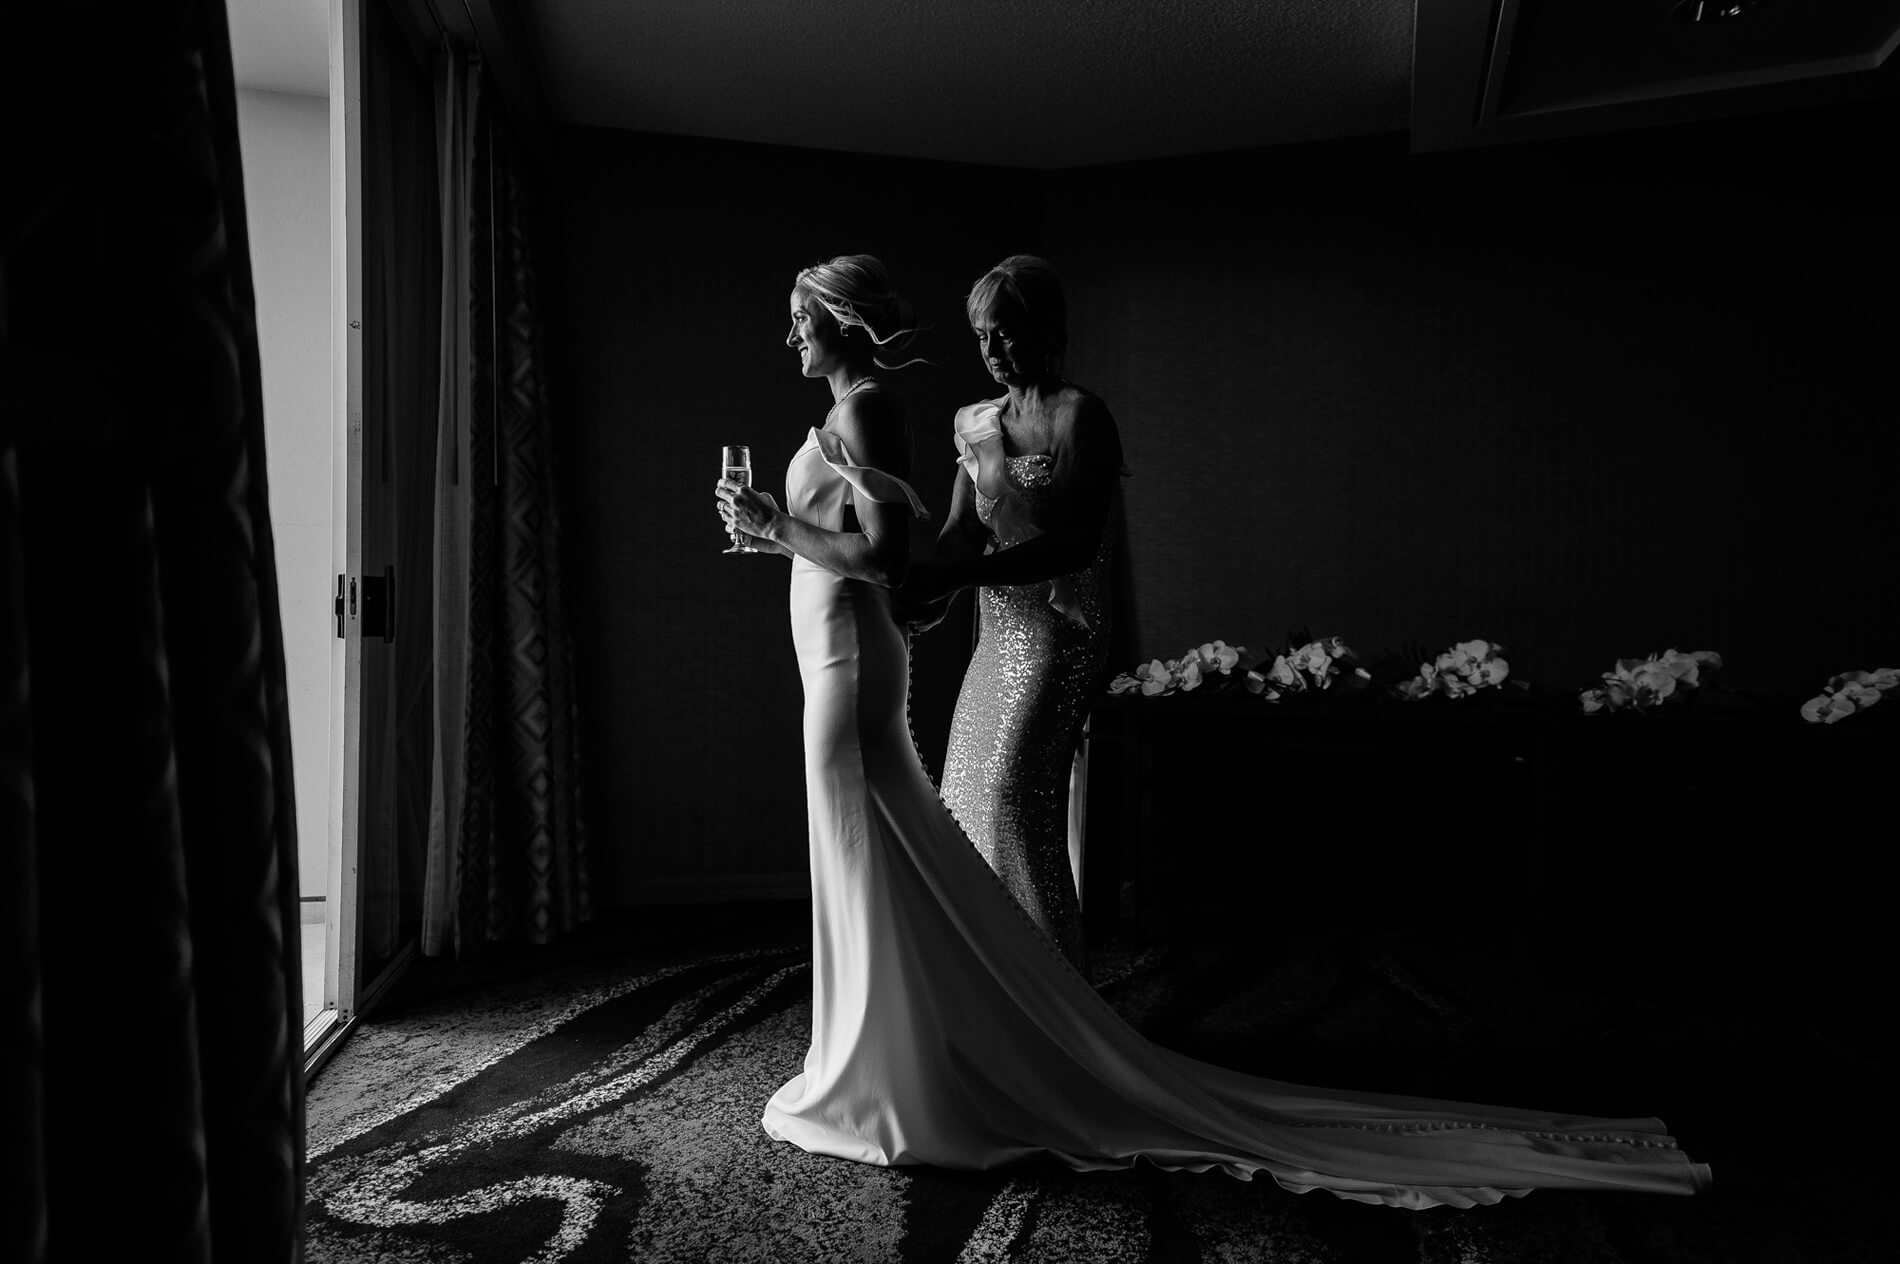 clean bridal suite wedding photography tips